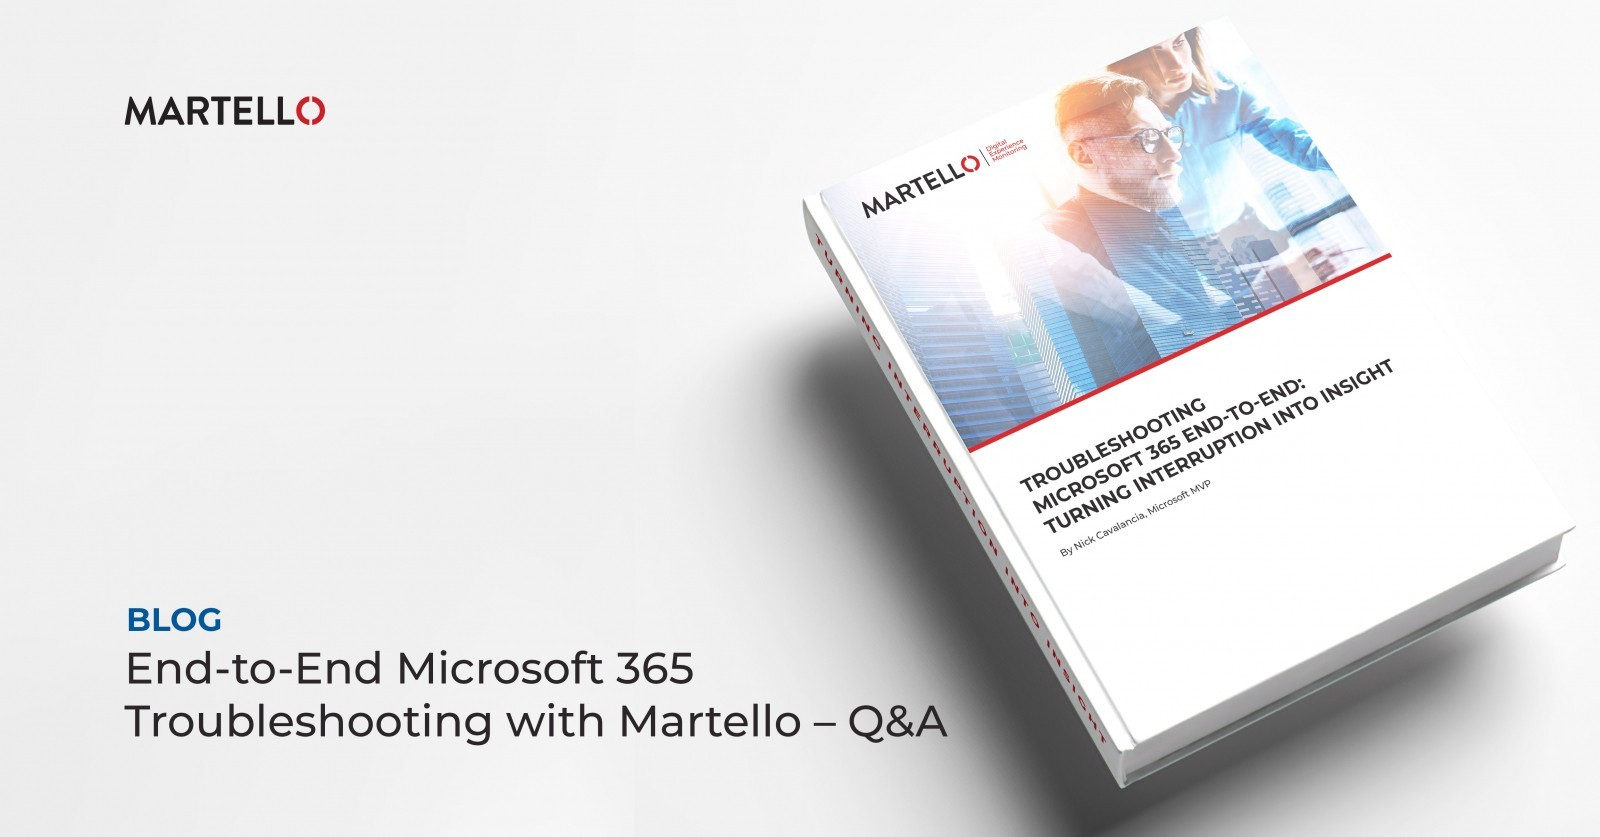 End-to-End Microsoft 365 Troubleshooting with Martello - Q&A